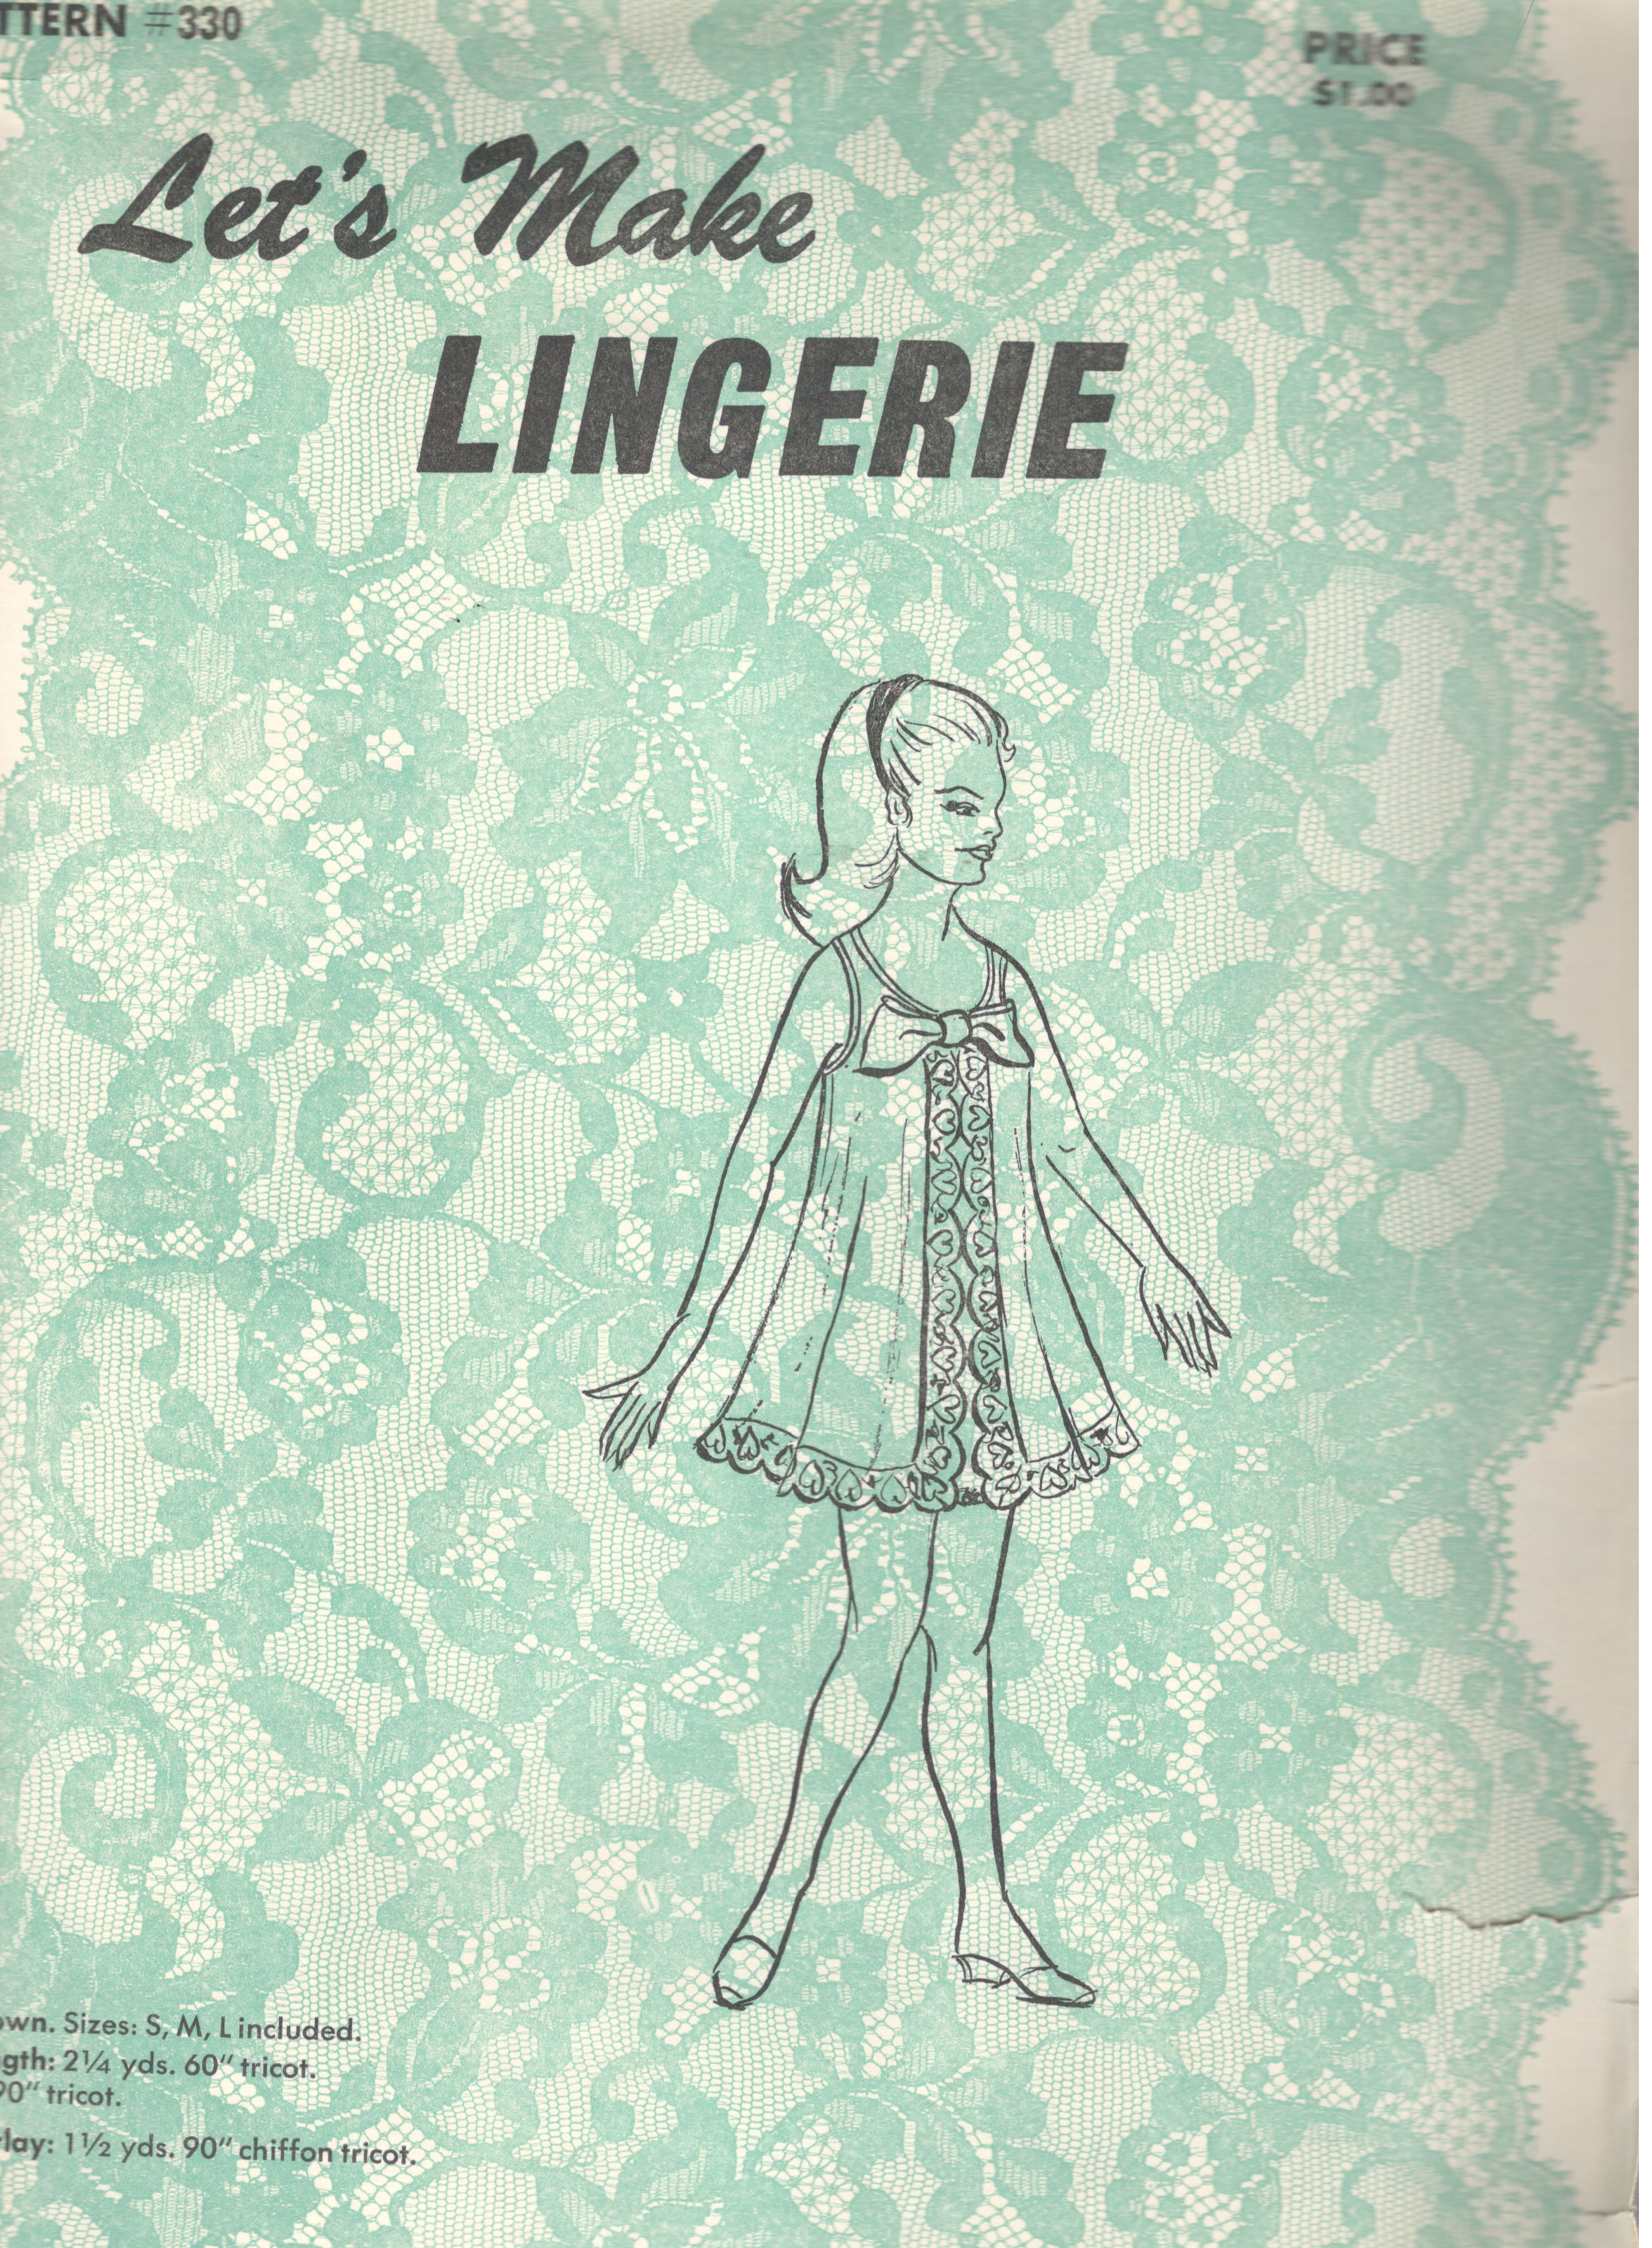 Let's Make Lingerie 330